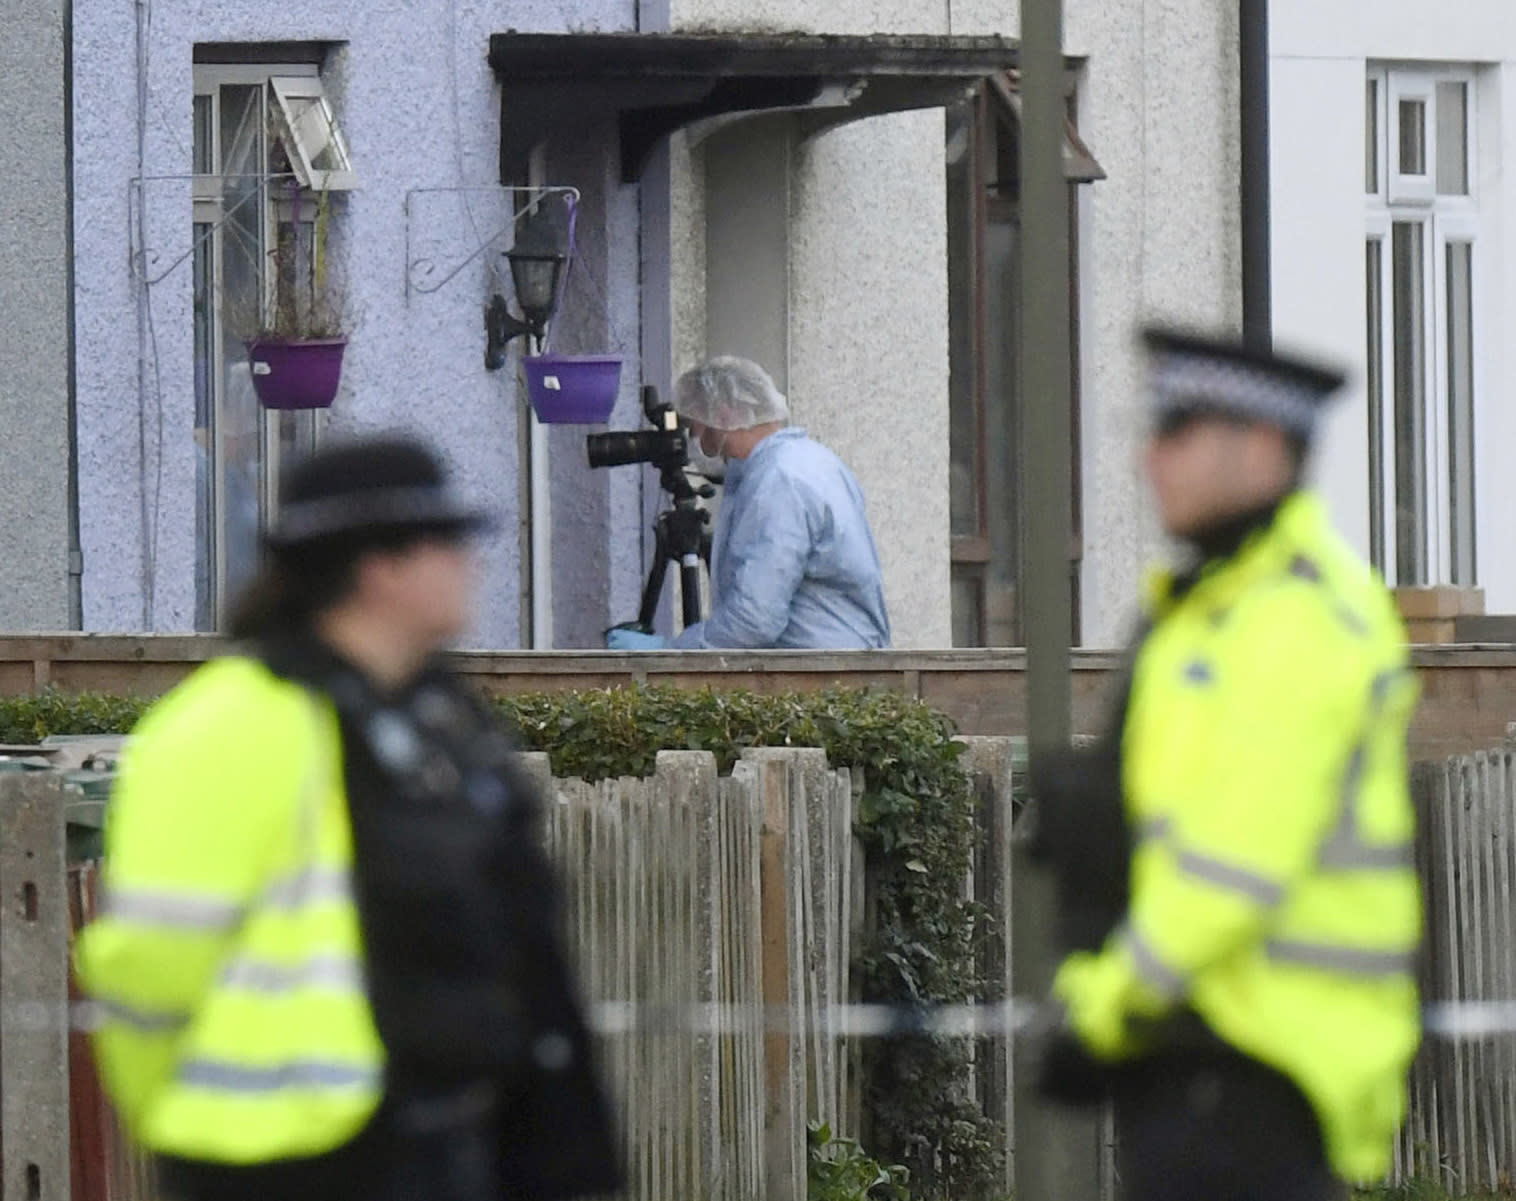 "<p>Police and forensic officers work at a property in Sunbury-on-Thames, southwest London, as part of the investigation into Friday's Parsons Green bombing, Saturday Sept, 16, 2017. British police made what they called a ""significant"" arrest Saturday in southern England following the partially exploded bomb attack on the London subway. (Photo: Victoria Jones/PA via AP) </p>"